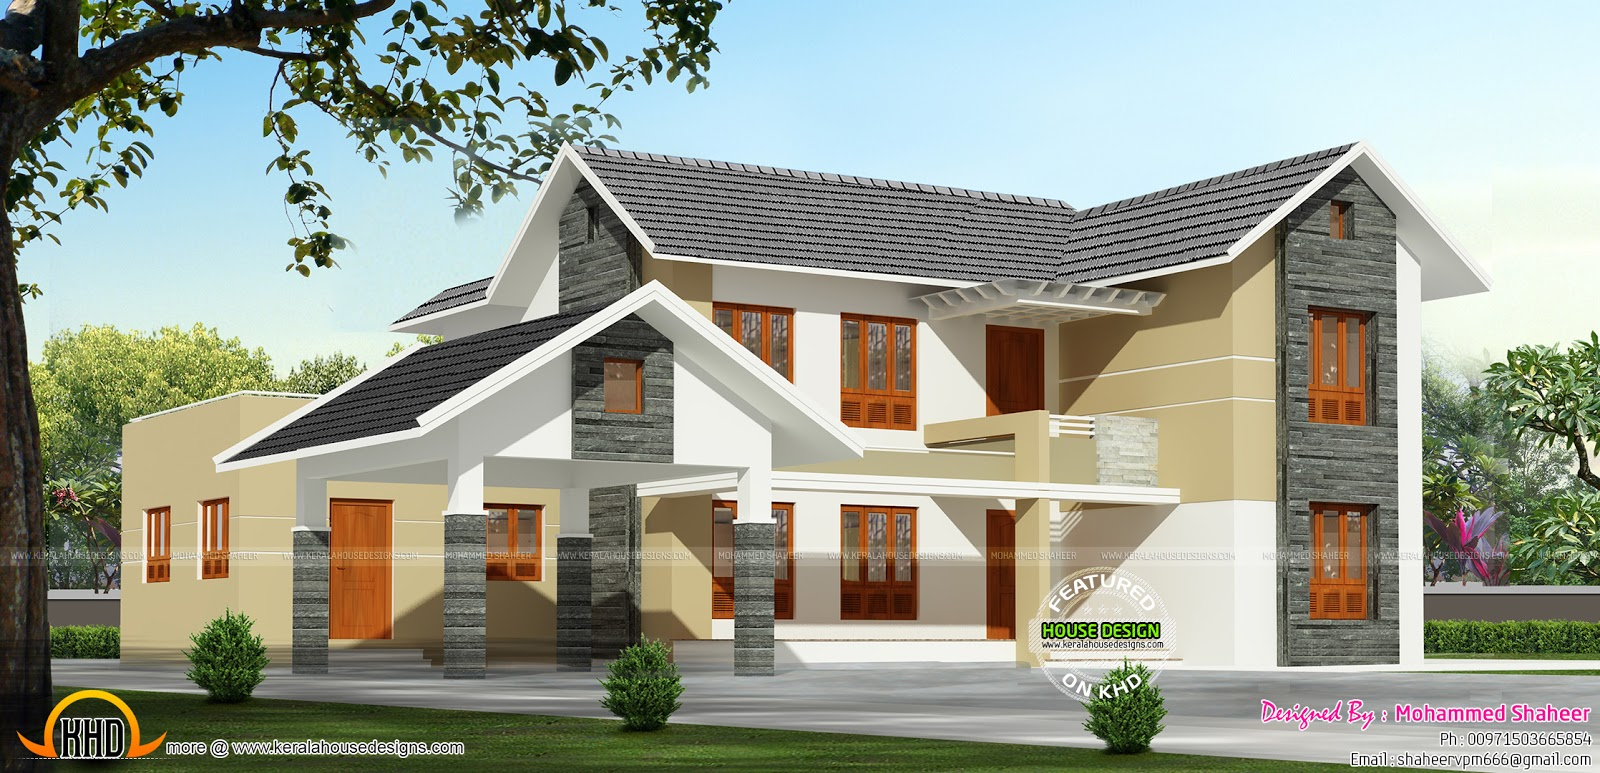 28 Kerala Sloped Roof Home Design Modern Sloping Roof House In 315 Square Yards Kerala Kerala House Plans And Elevations Keralahouseplanner Com Modern Sloped Roof Kerala Home Design In 2444 Sqft By